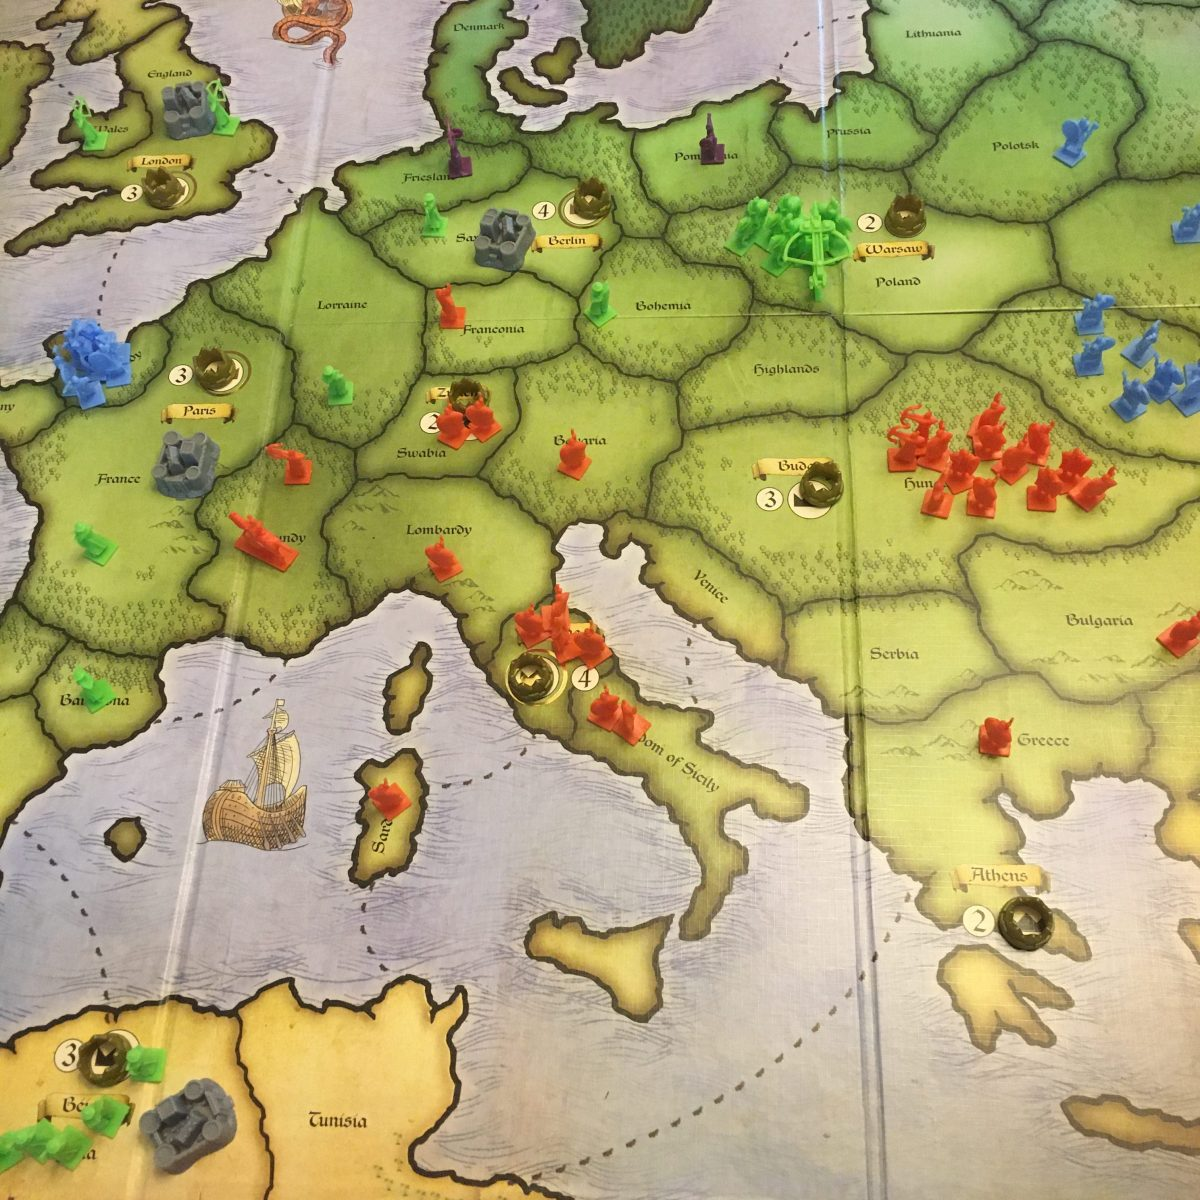 Turn 8 - Purple has a couple of territories left...